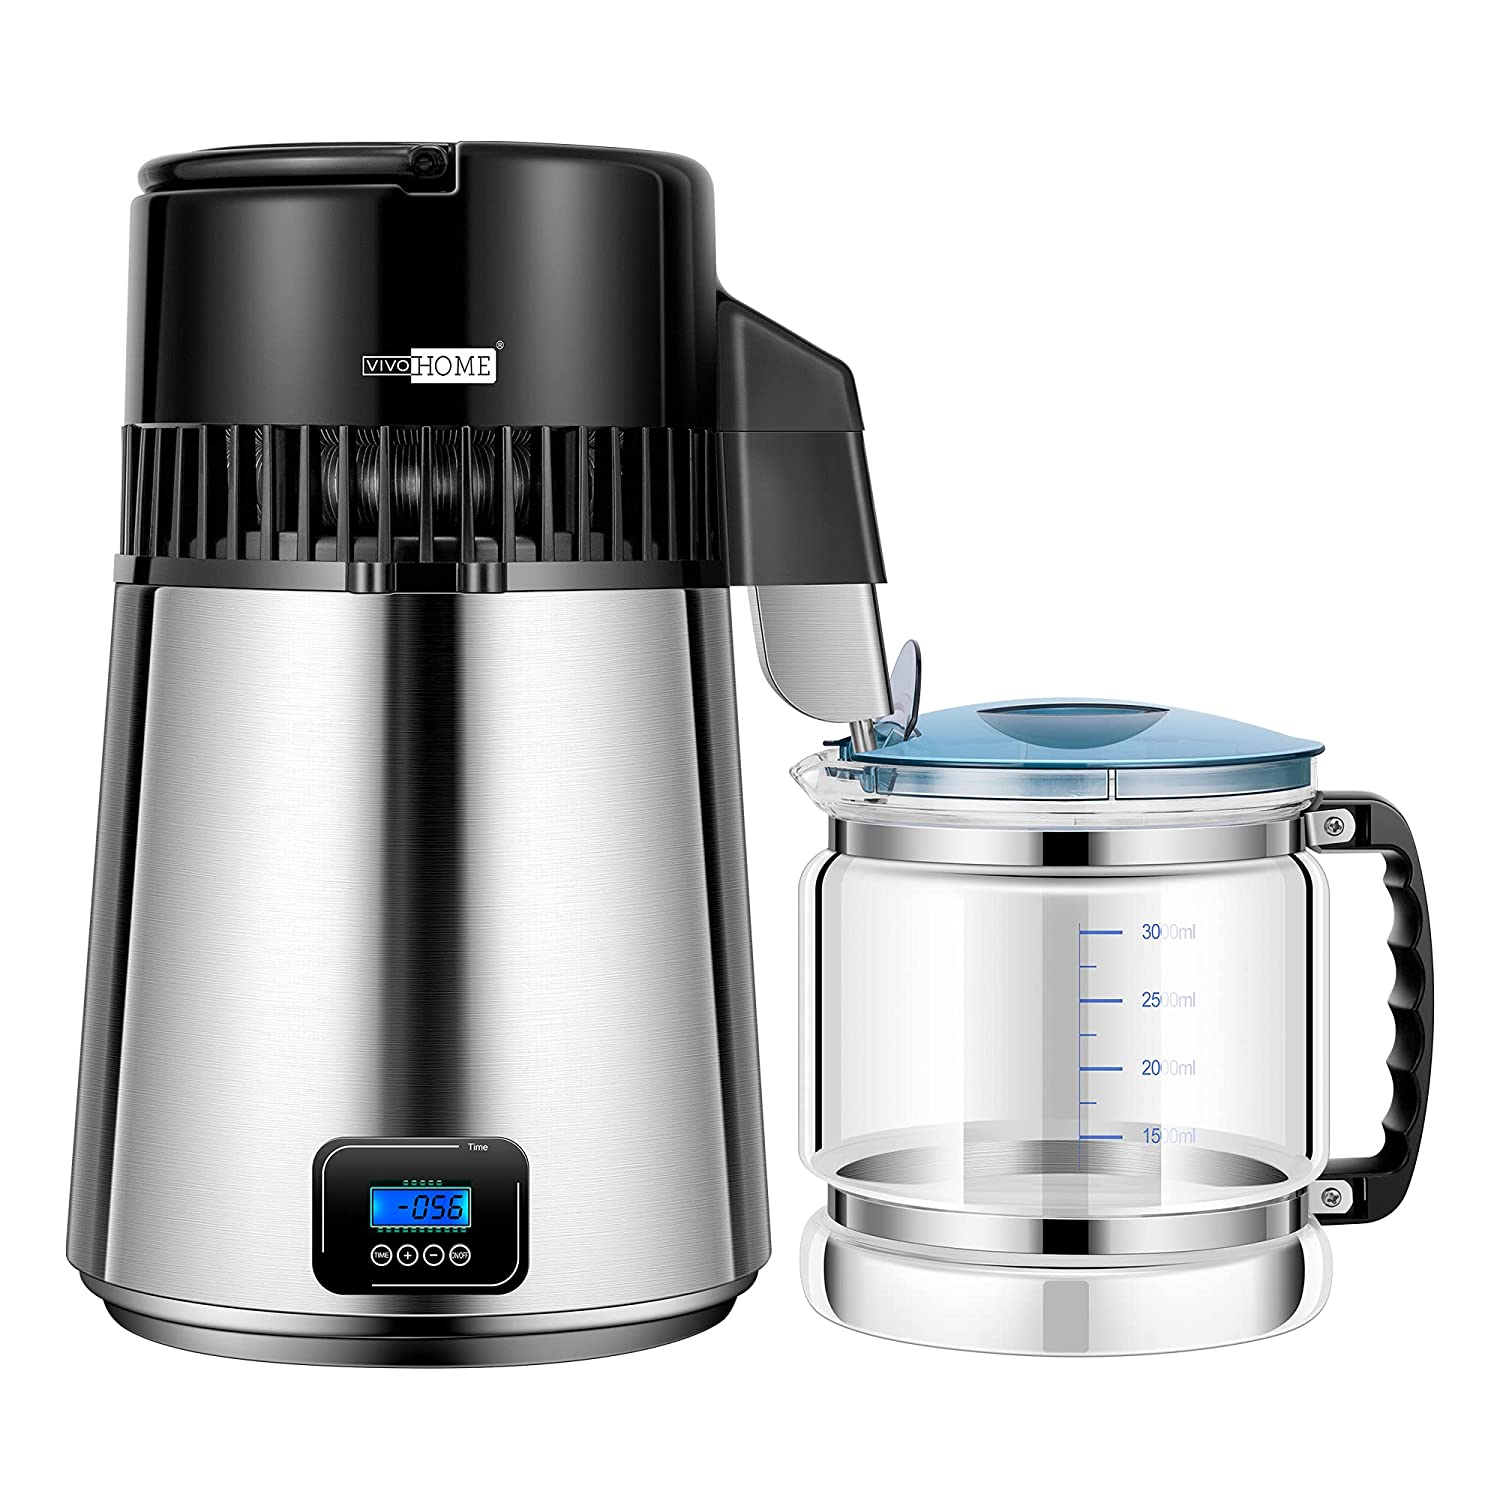 VIVOHOME Digital Control 4L 750W 304 Stainless Steel Water Distiller Countertop with LCD Screen Distilled Water Machine for Home Office